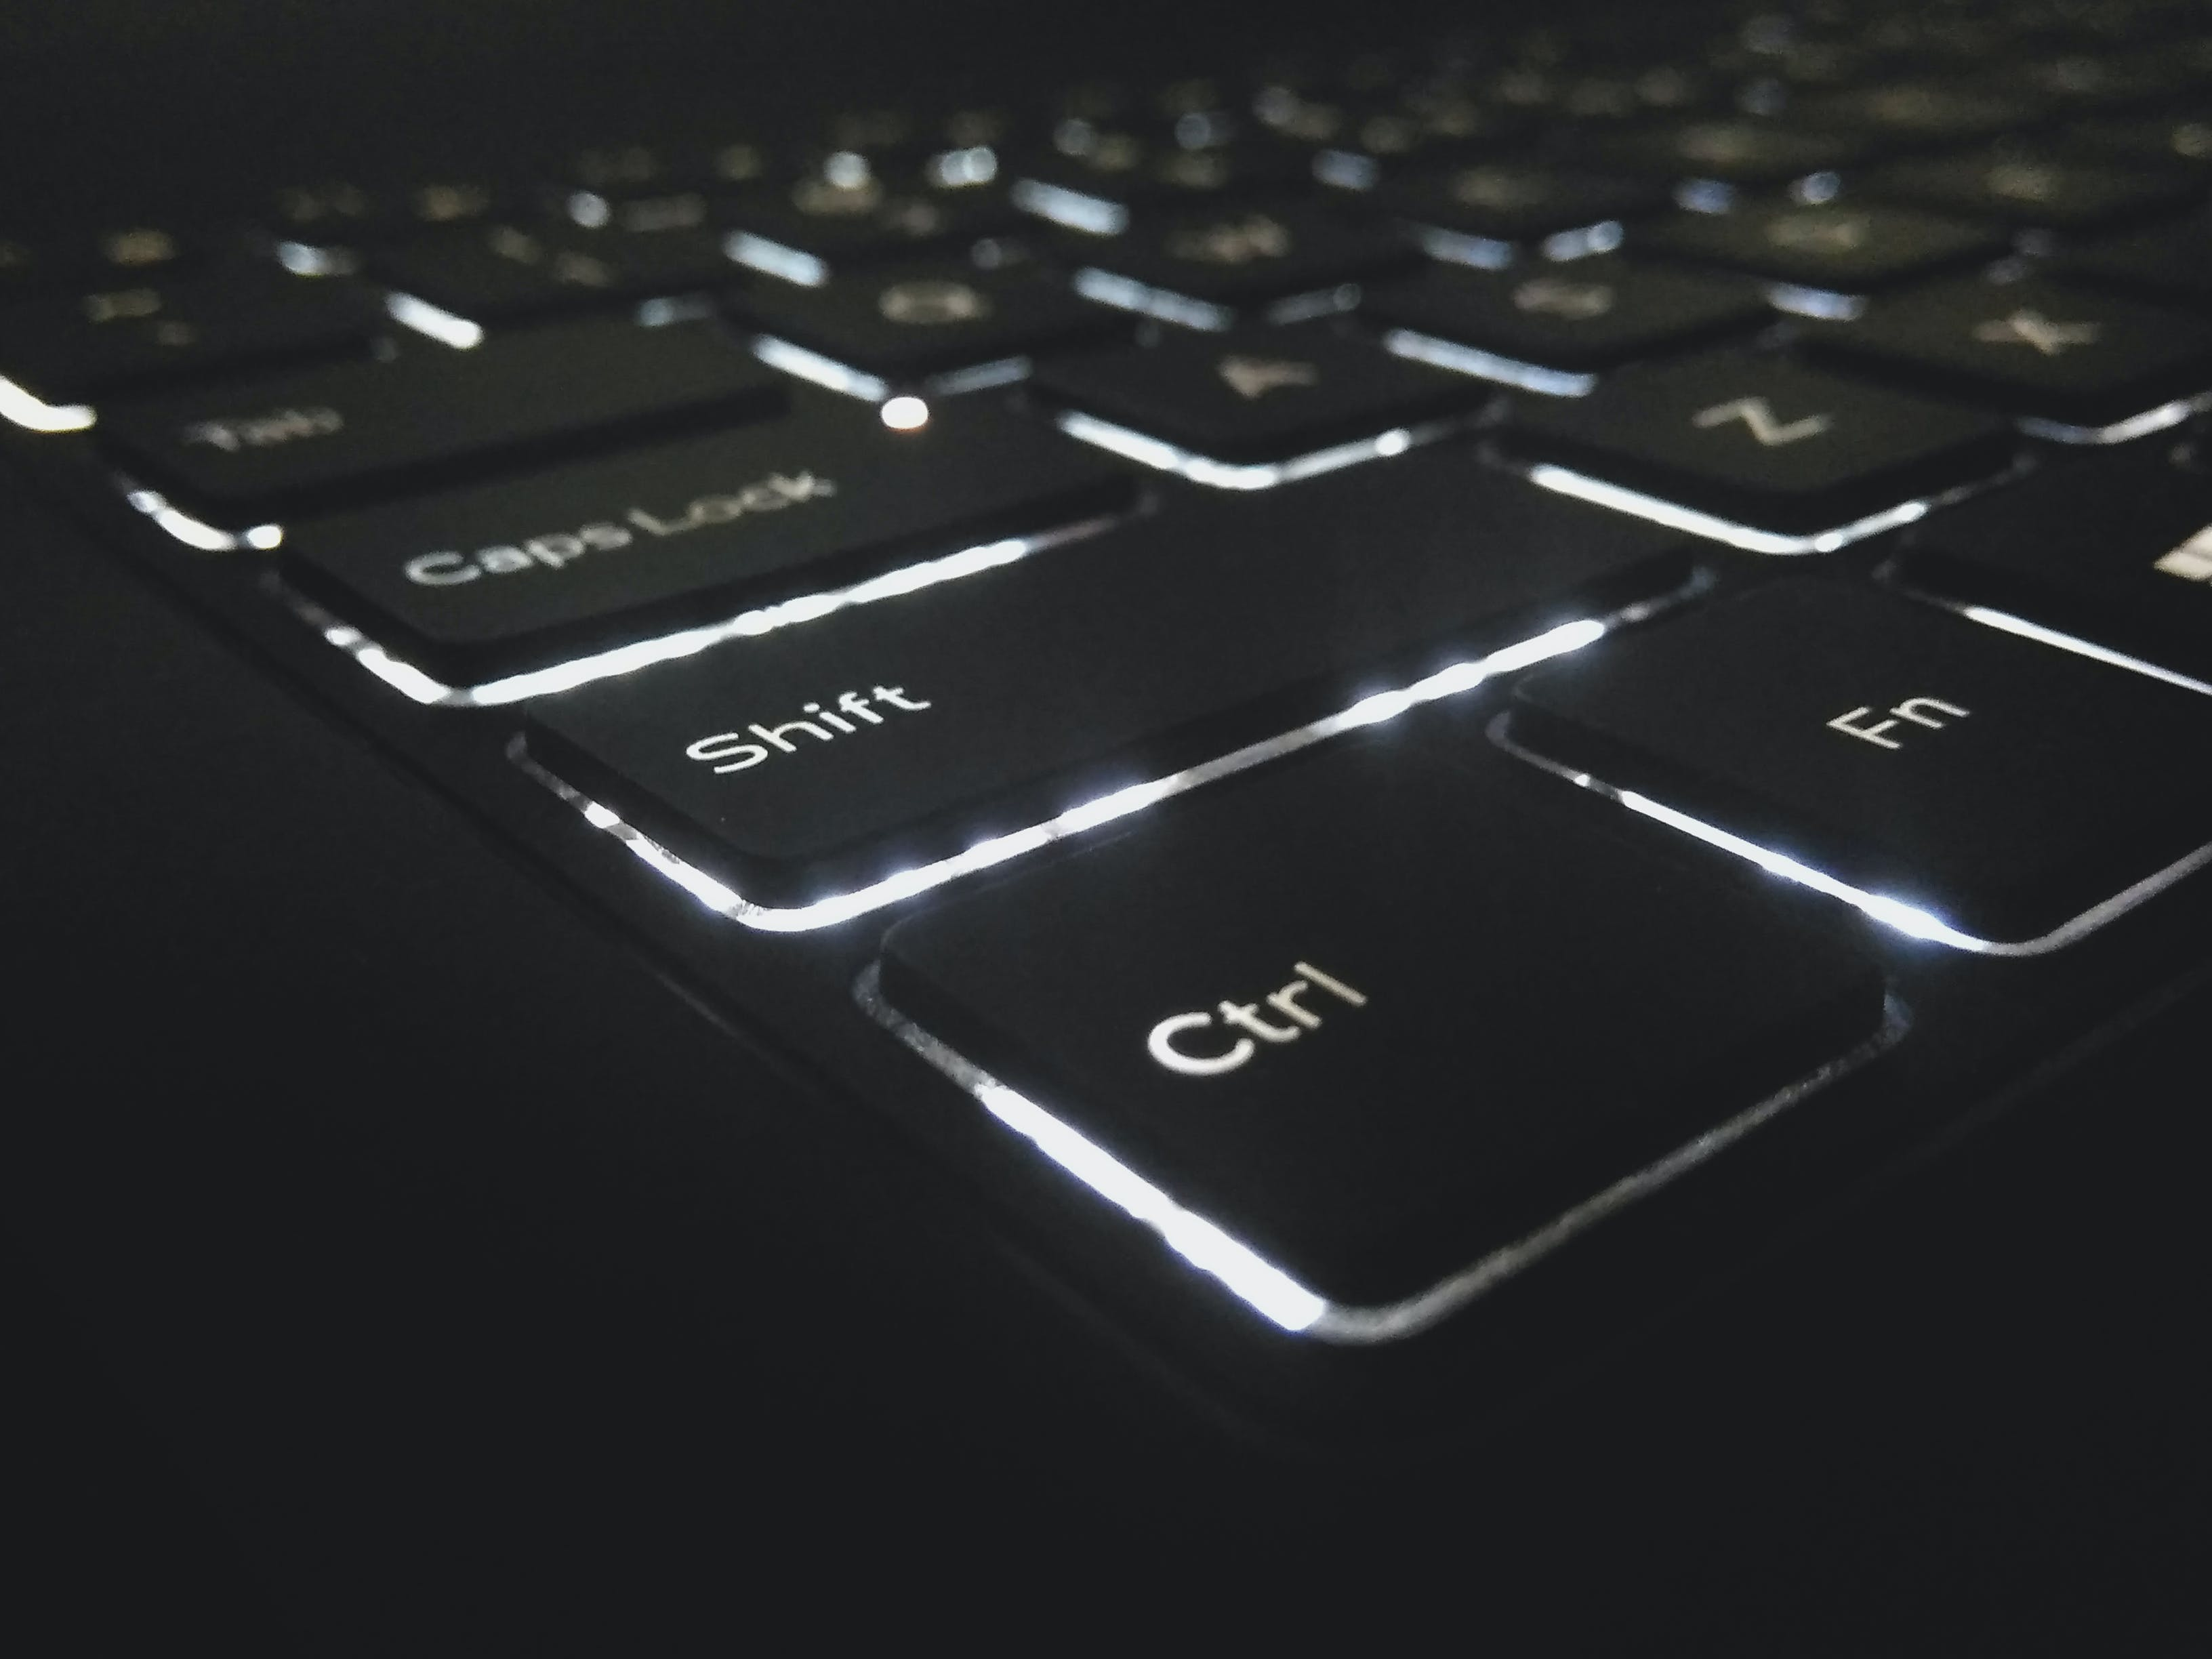 Free stock photo of back light, backlight, backlit, backlit keyboard